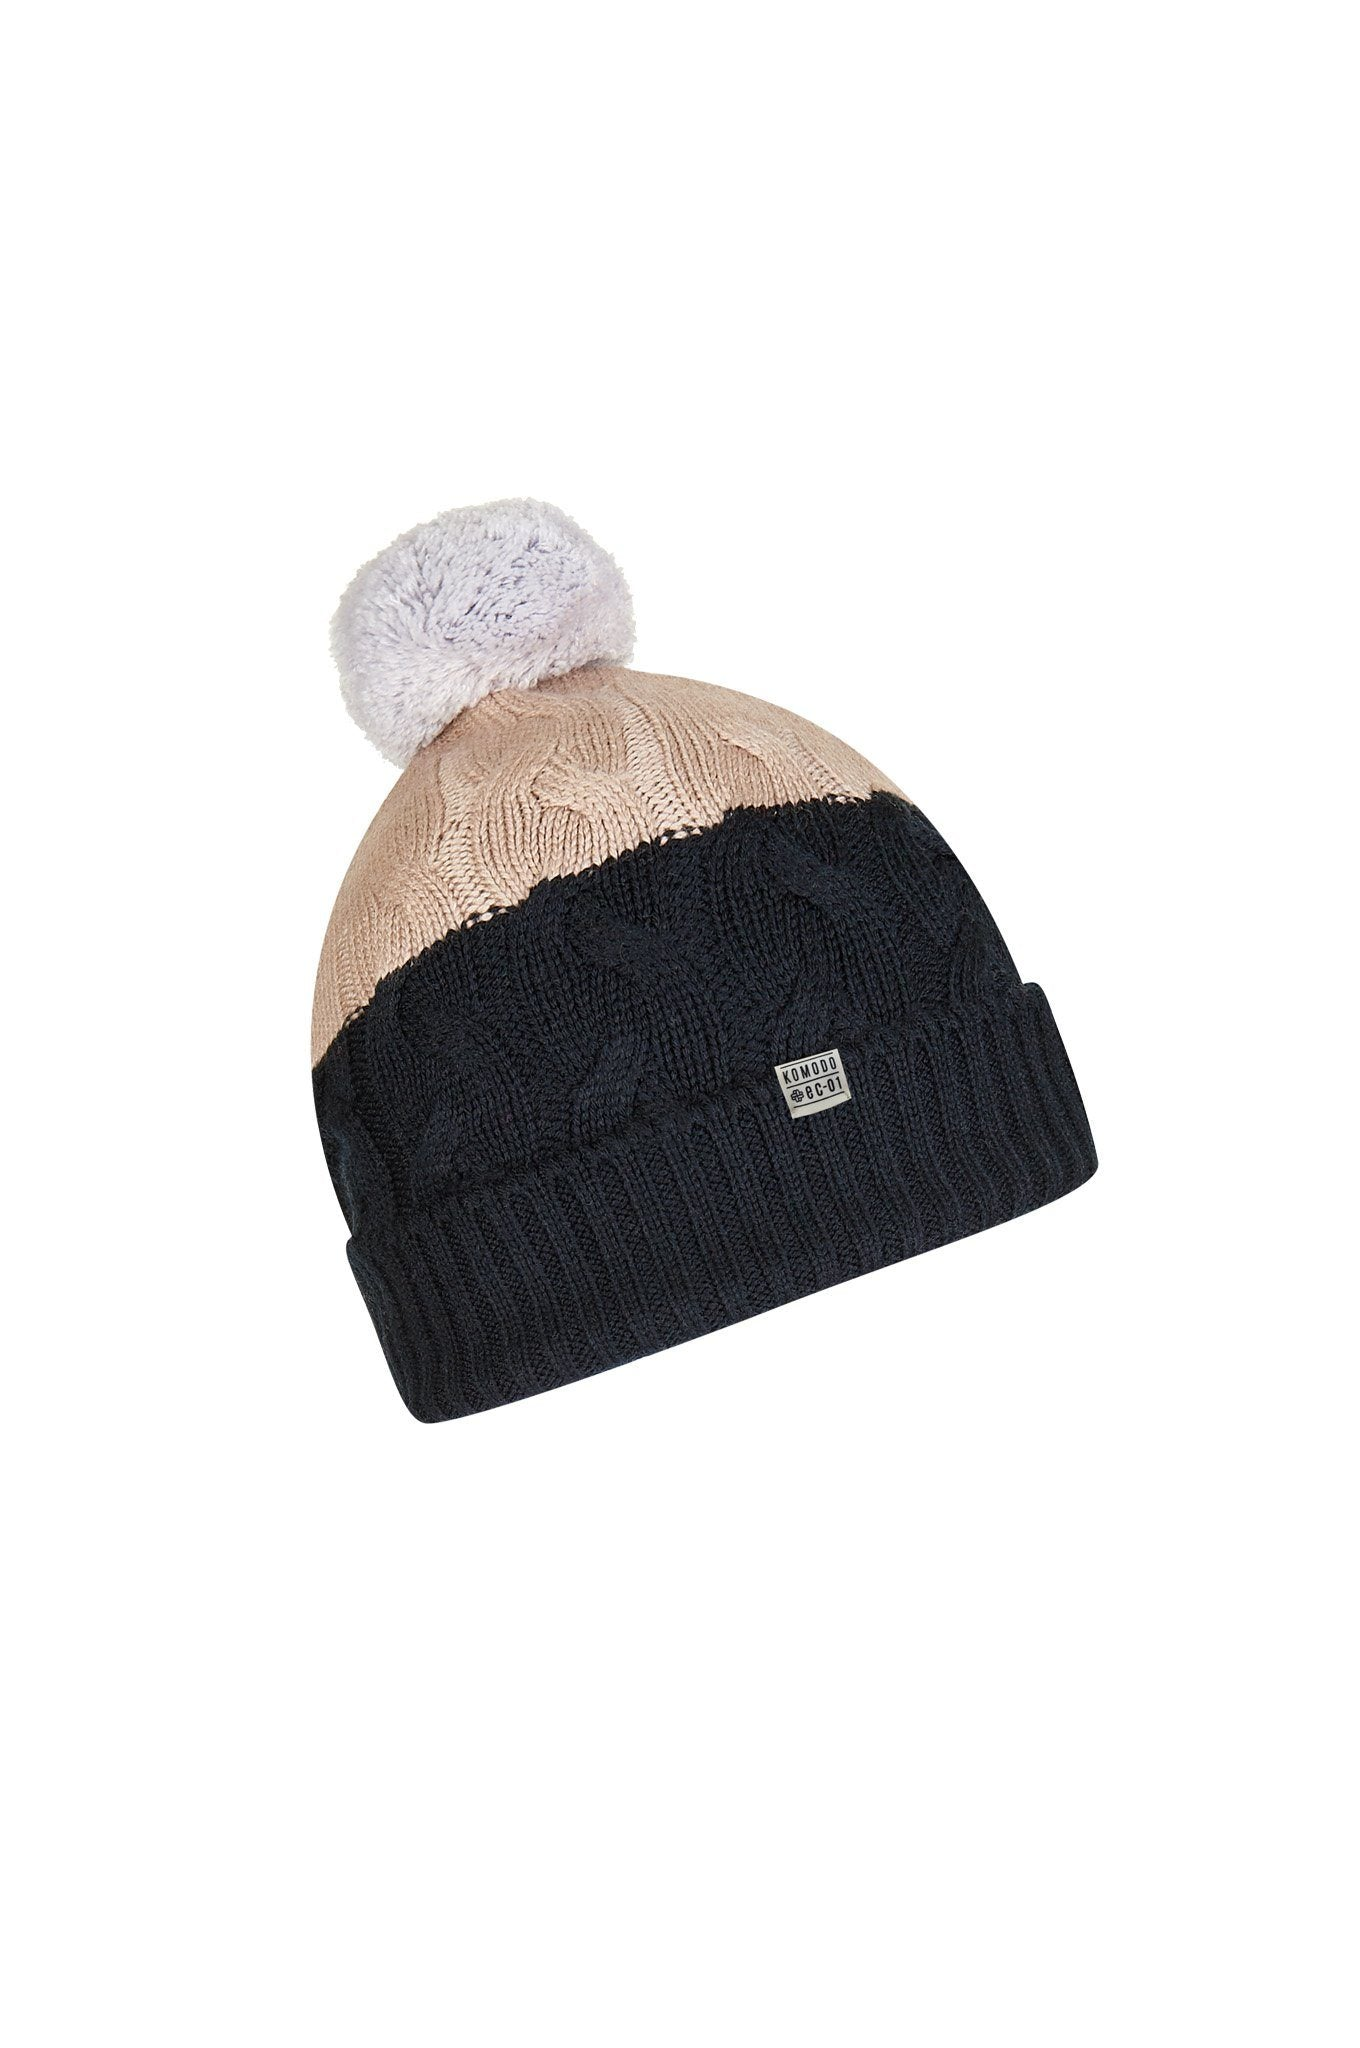 Accessories - EDDIE Merino Wool Hat Black